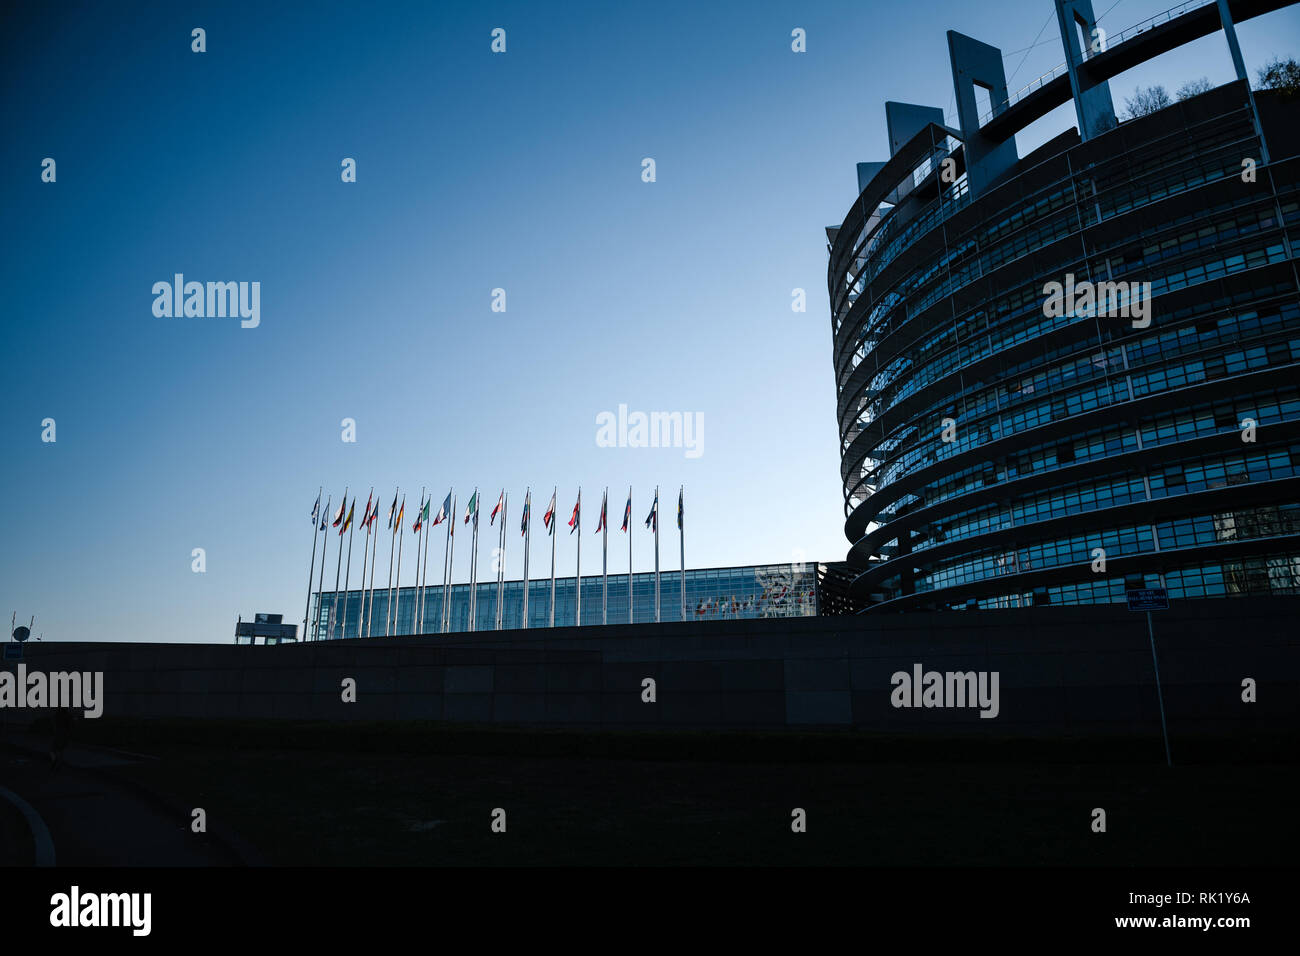 Silhouette of European Parliament building with all EU members state flags waving newsworthy image blue toned image for news - Stock Image